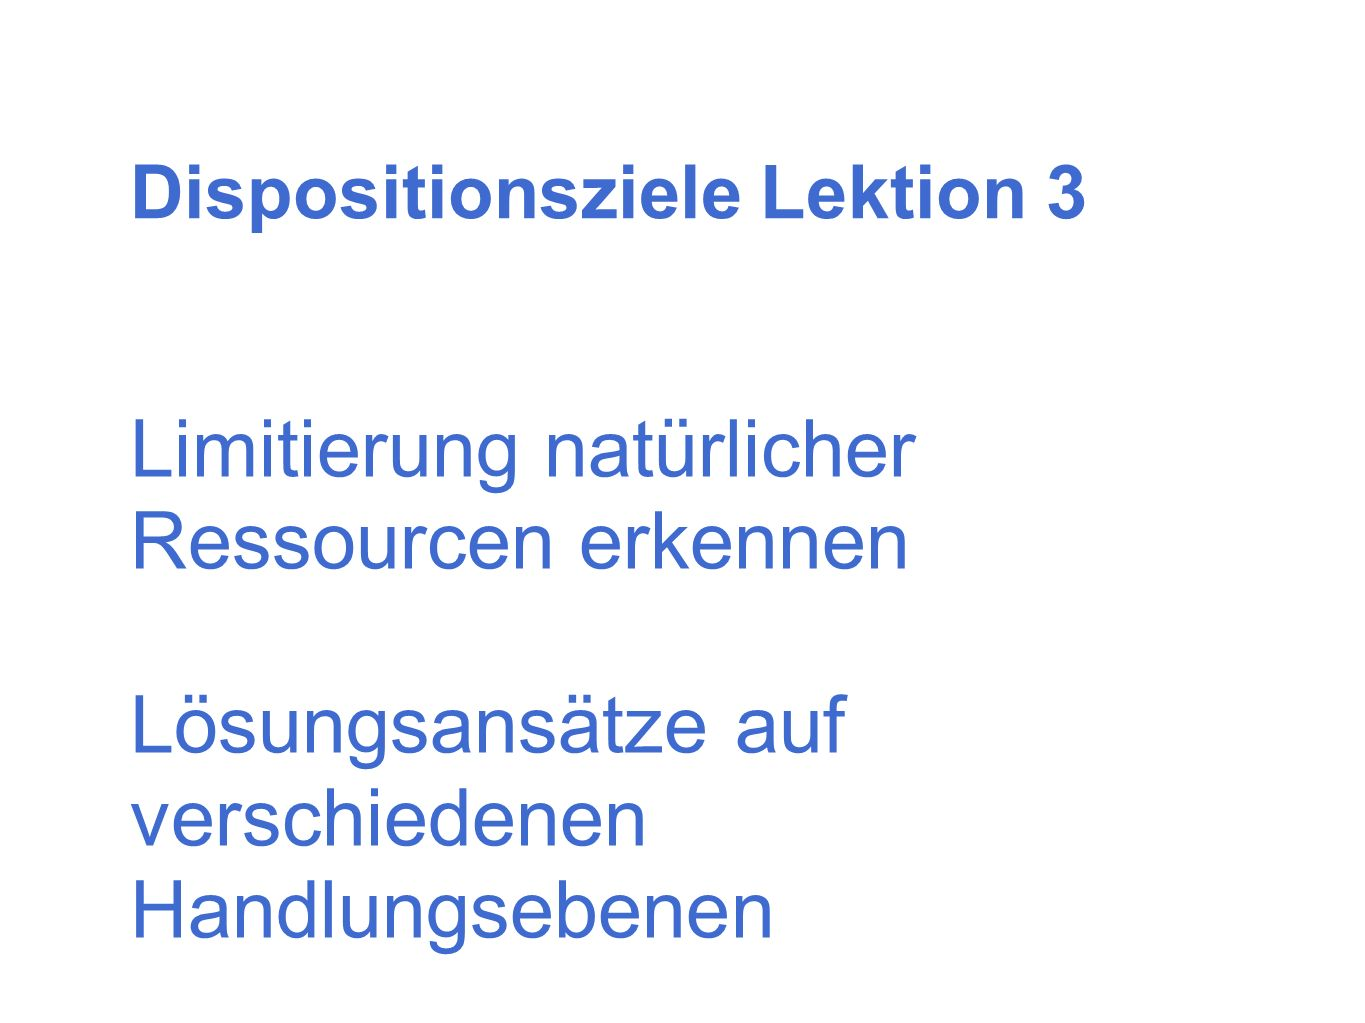 Dispositionsziele Lektion 3